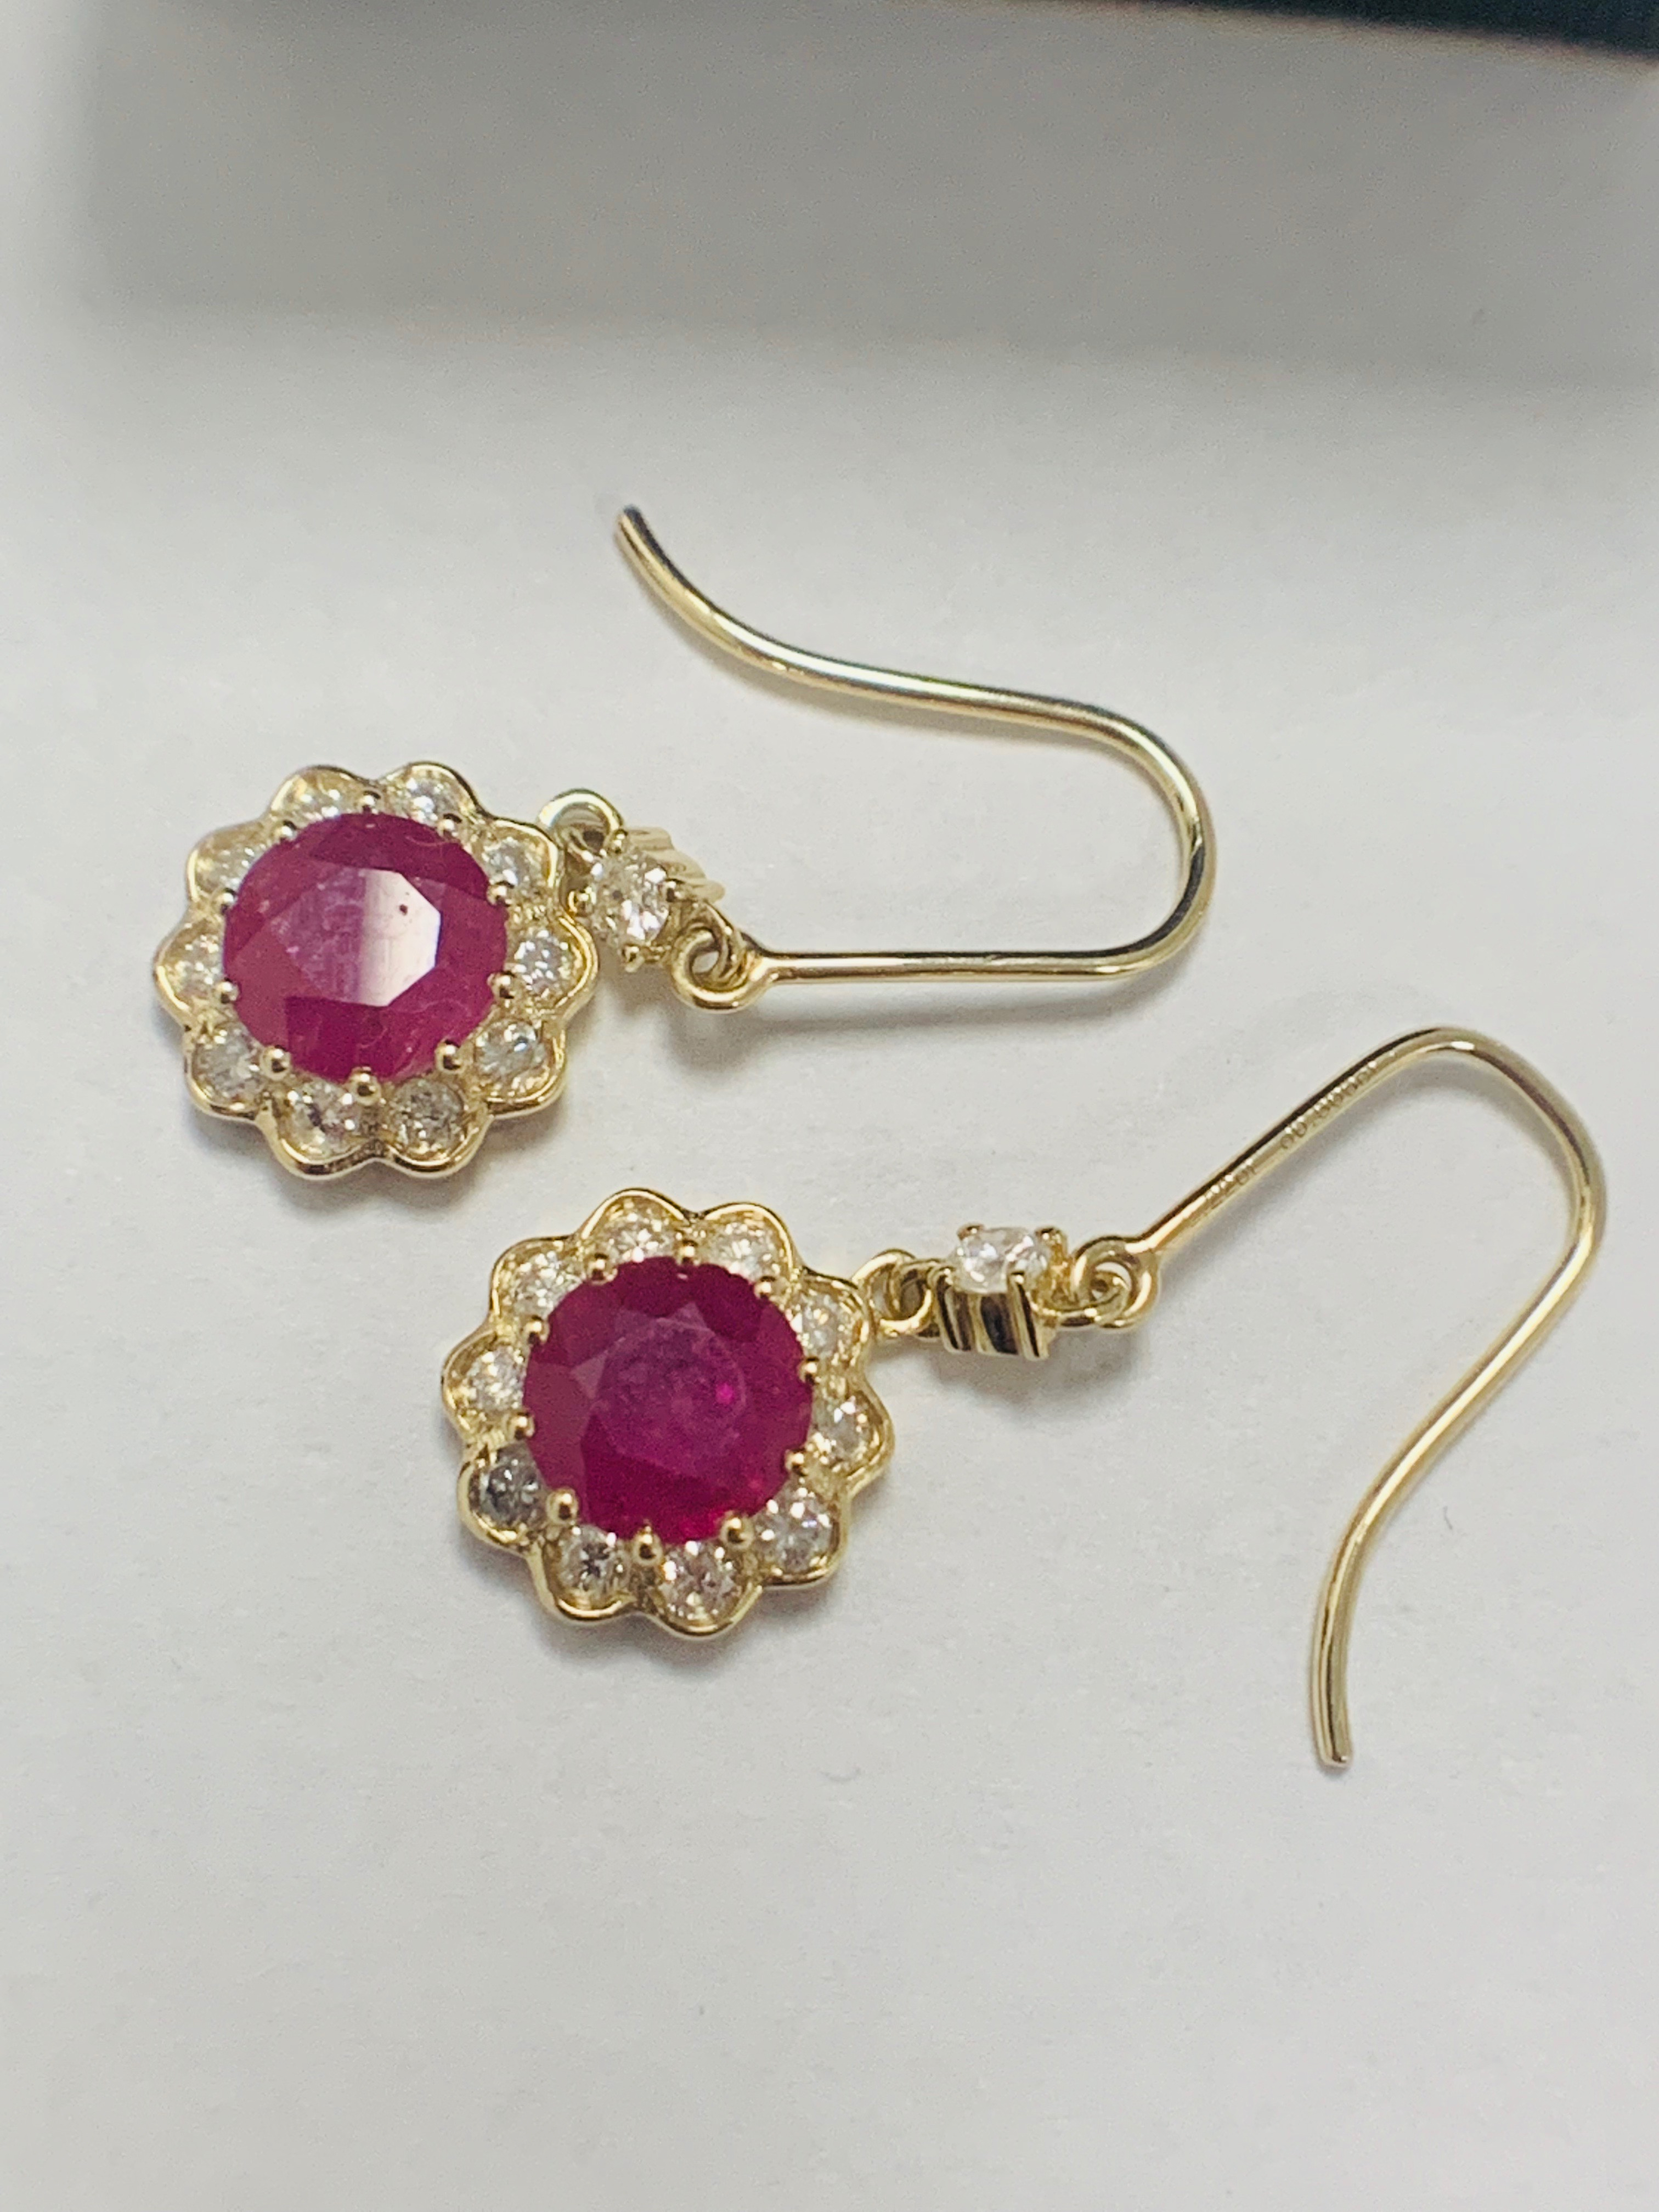 14ct Yellow Gold Ruby and Diamond earrings featuring, 2 round cut, red Rubies (2.22ct TSW) - Image 3 of 8